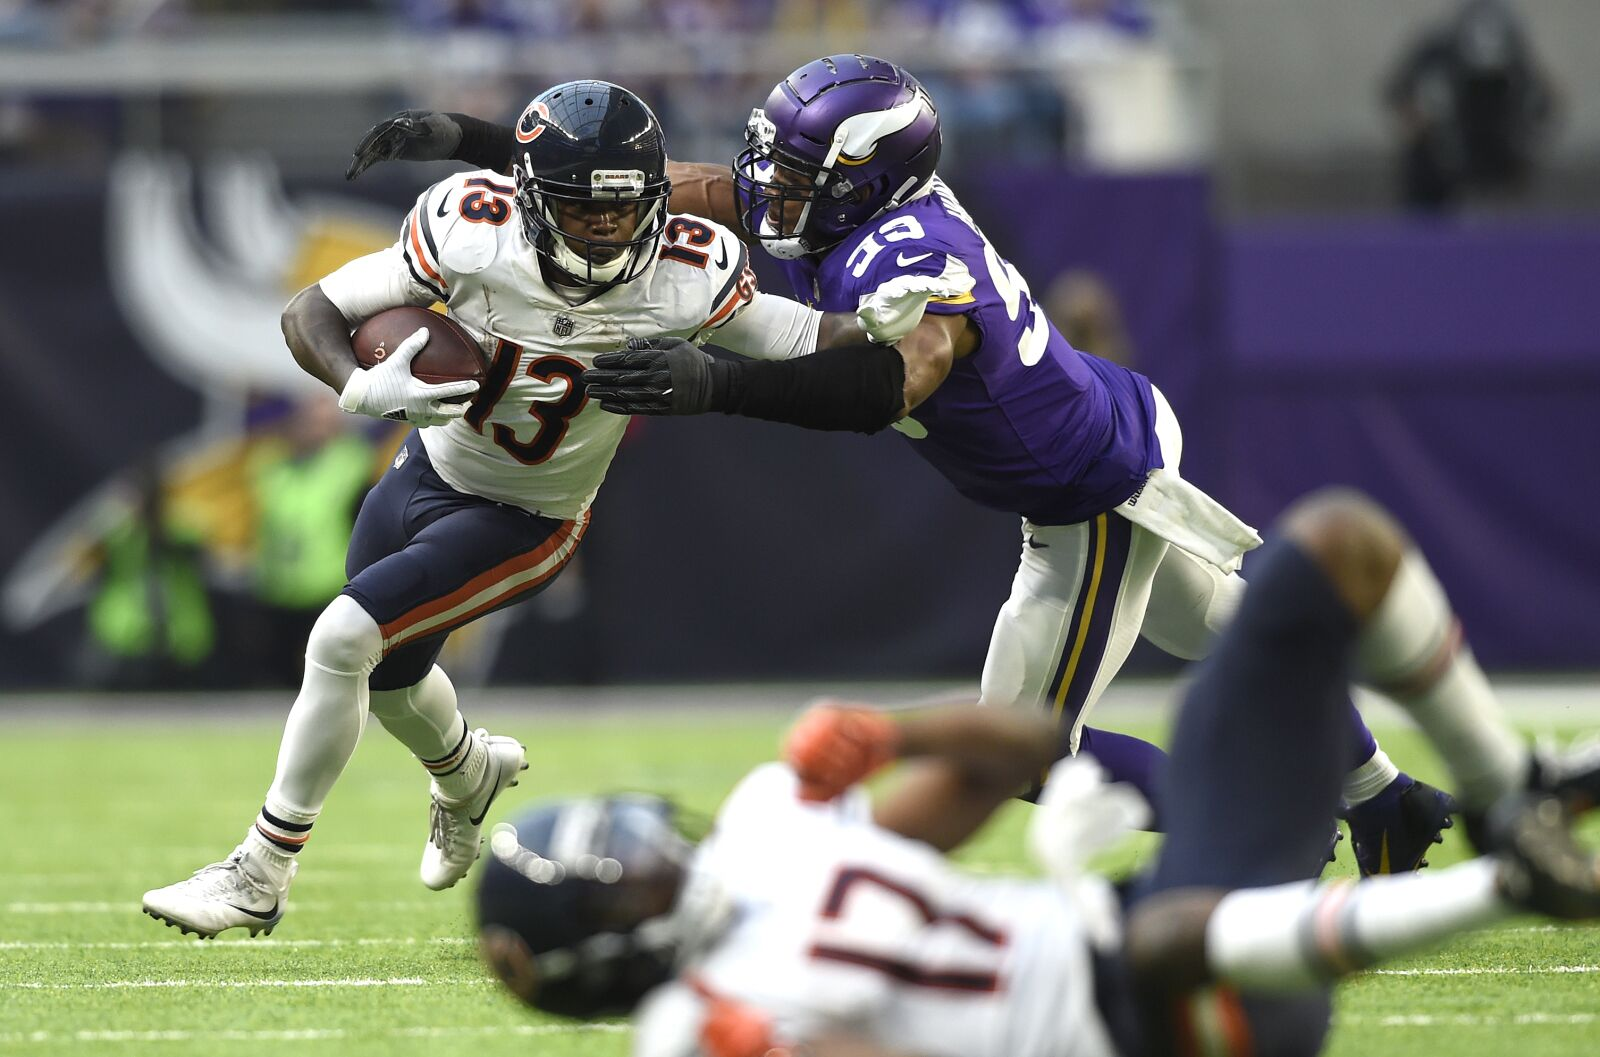 900108778-chicago-bears-v-minnesota-vikings.jpg